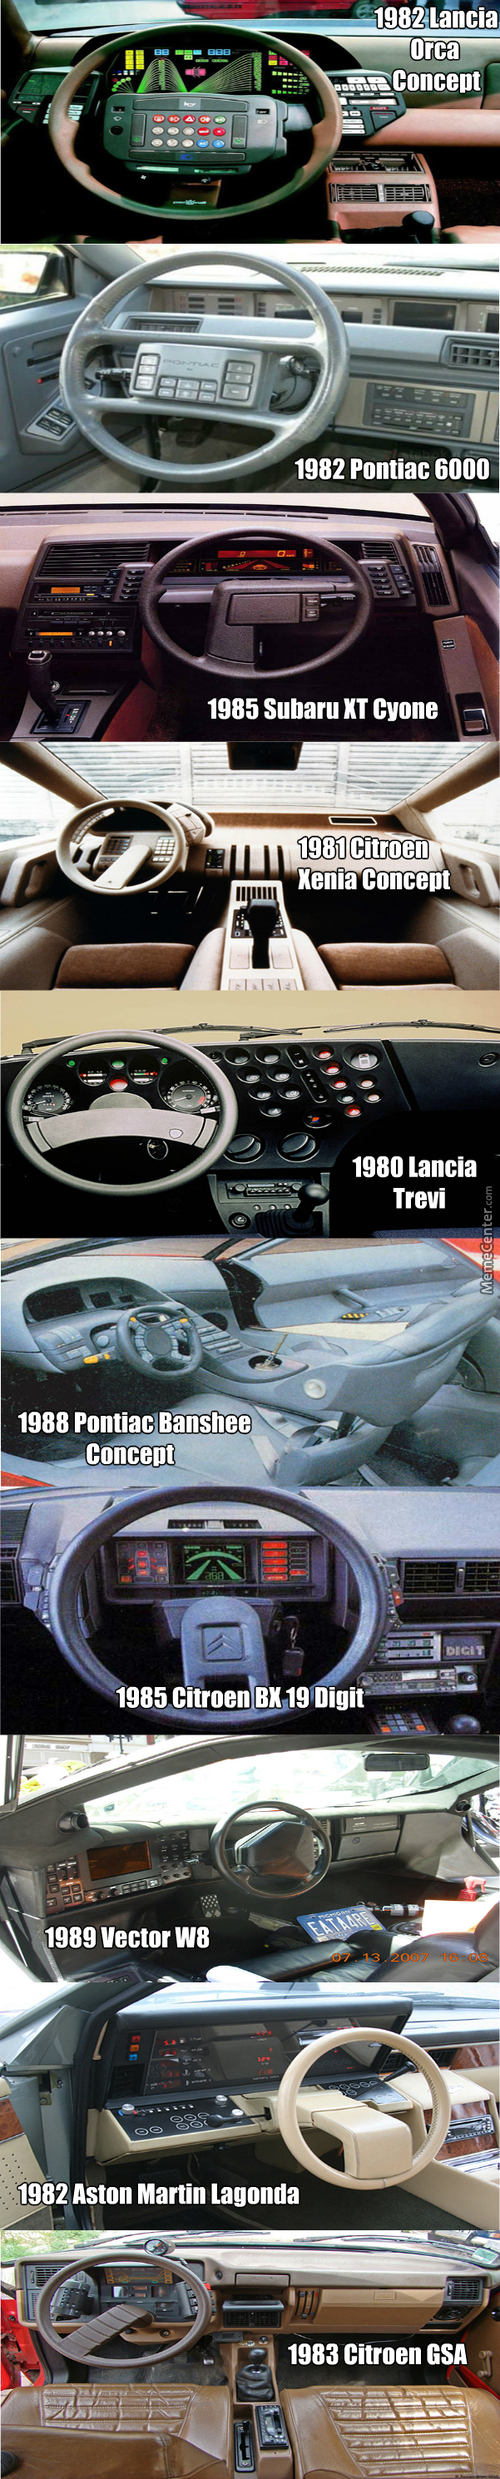 Crazy Car Dashboards From The 80's